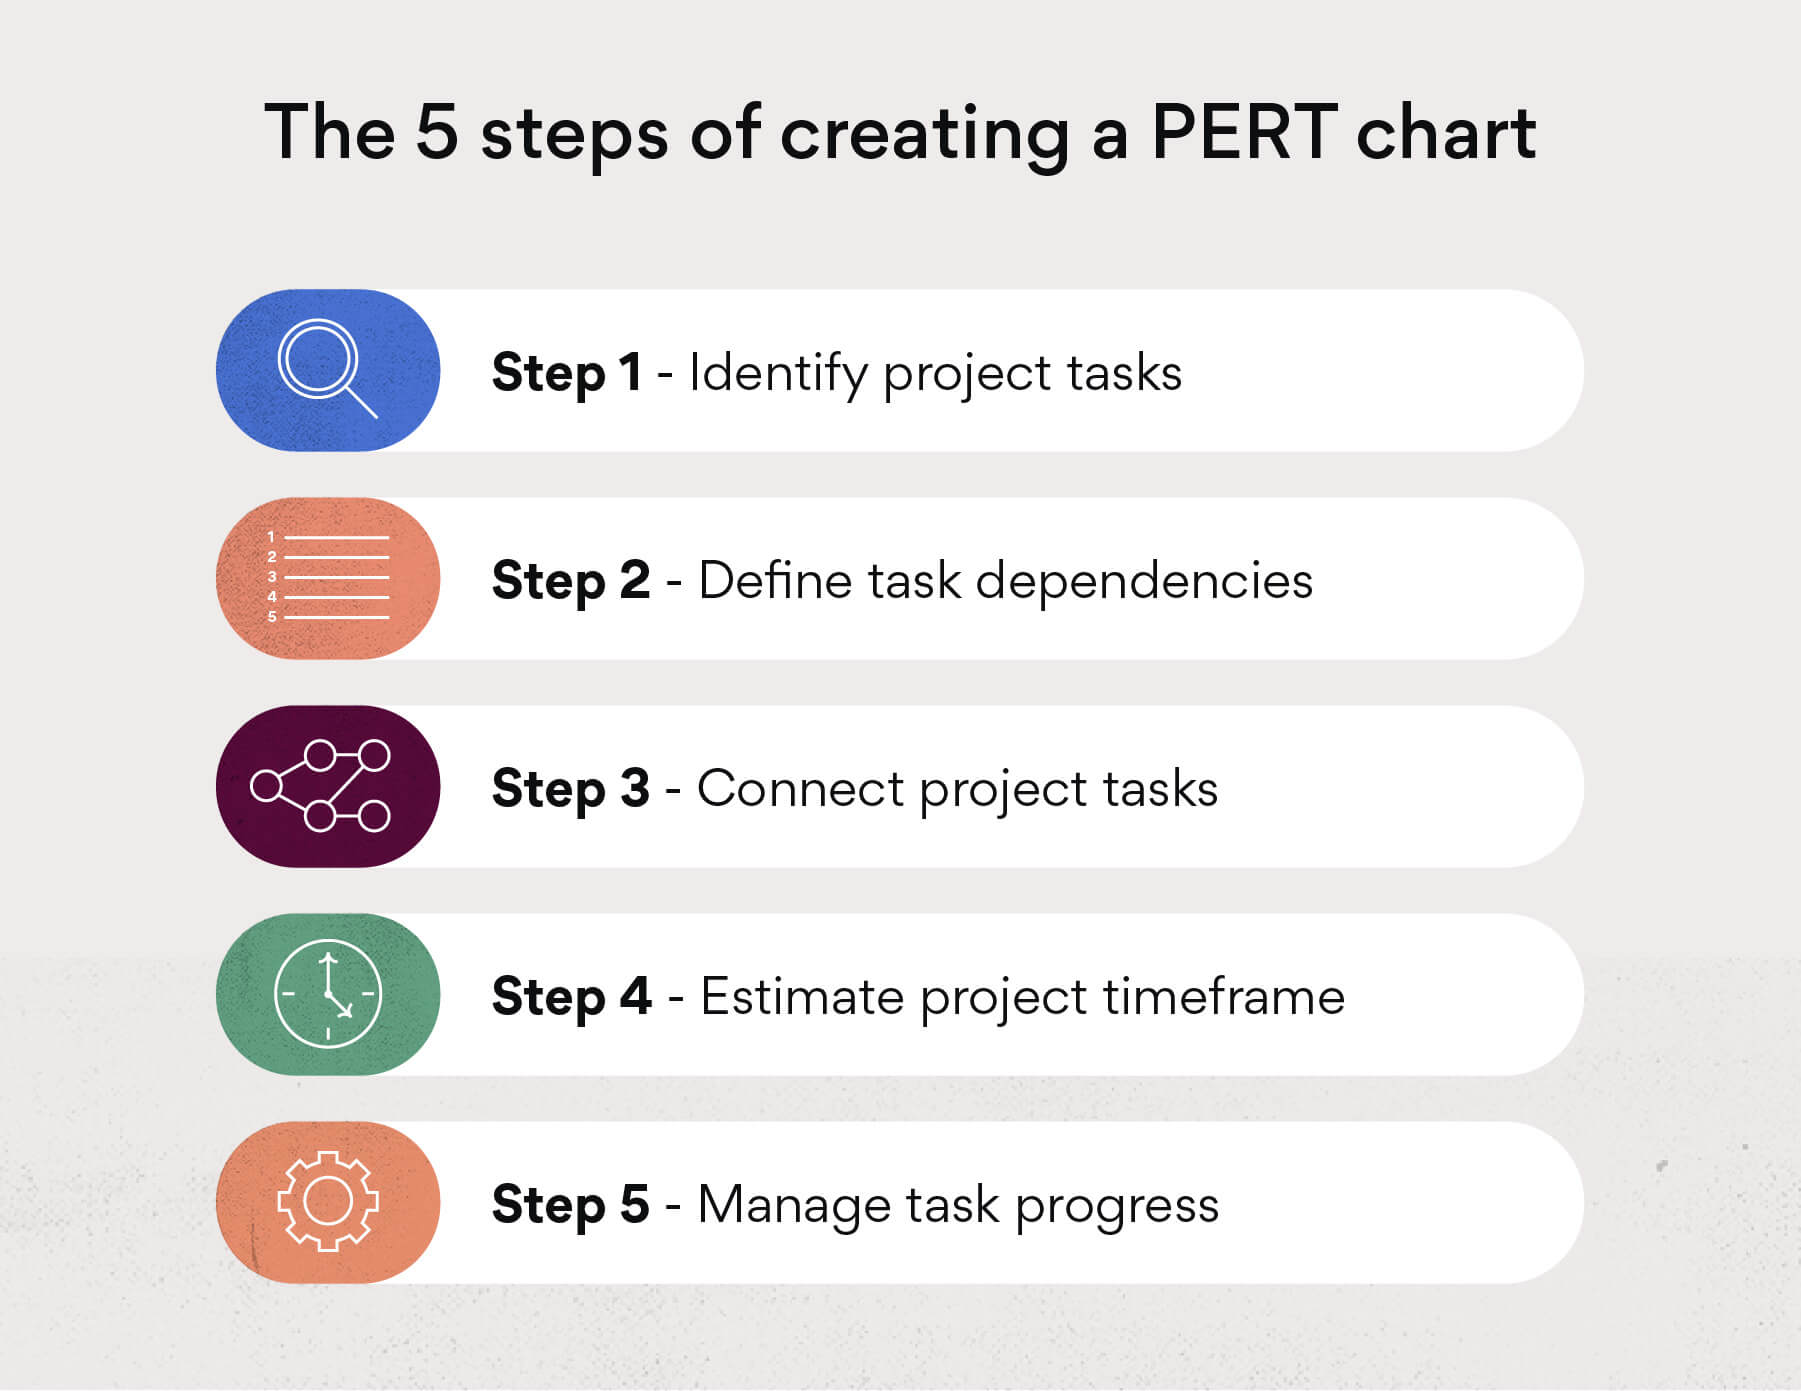 How to make a PERT chart